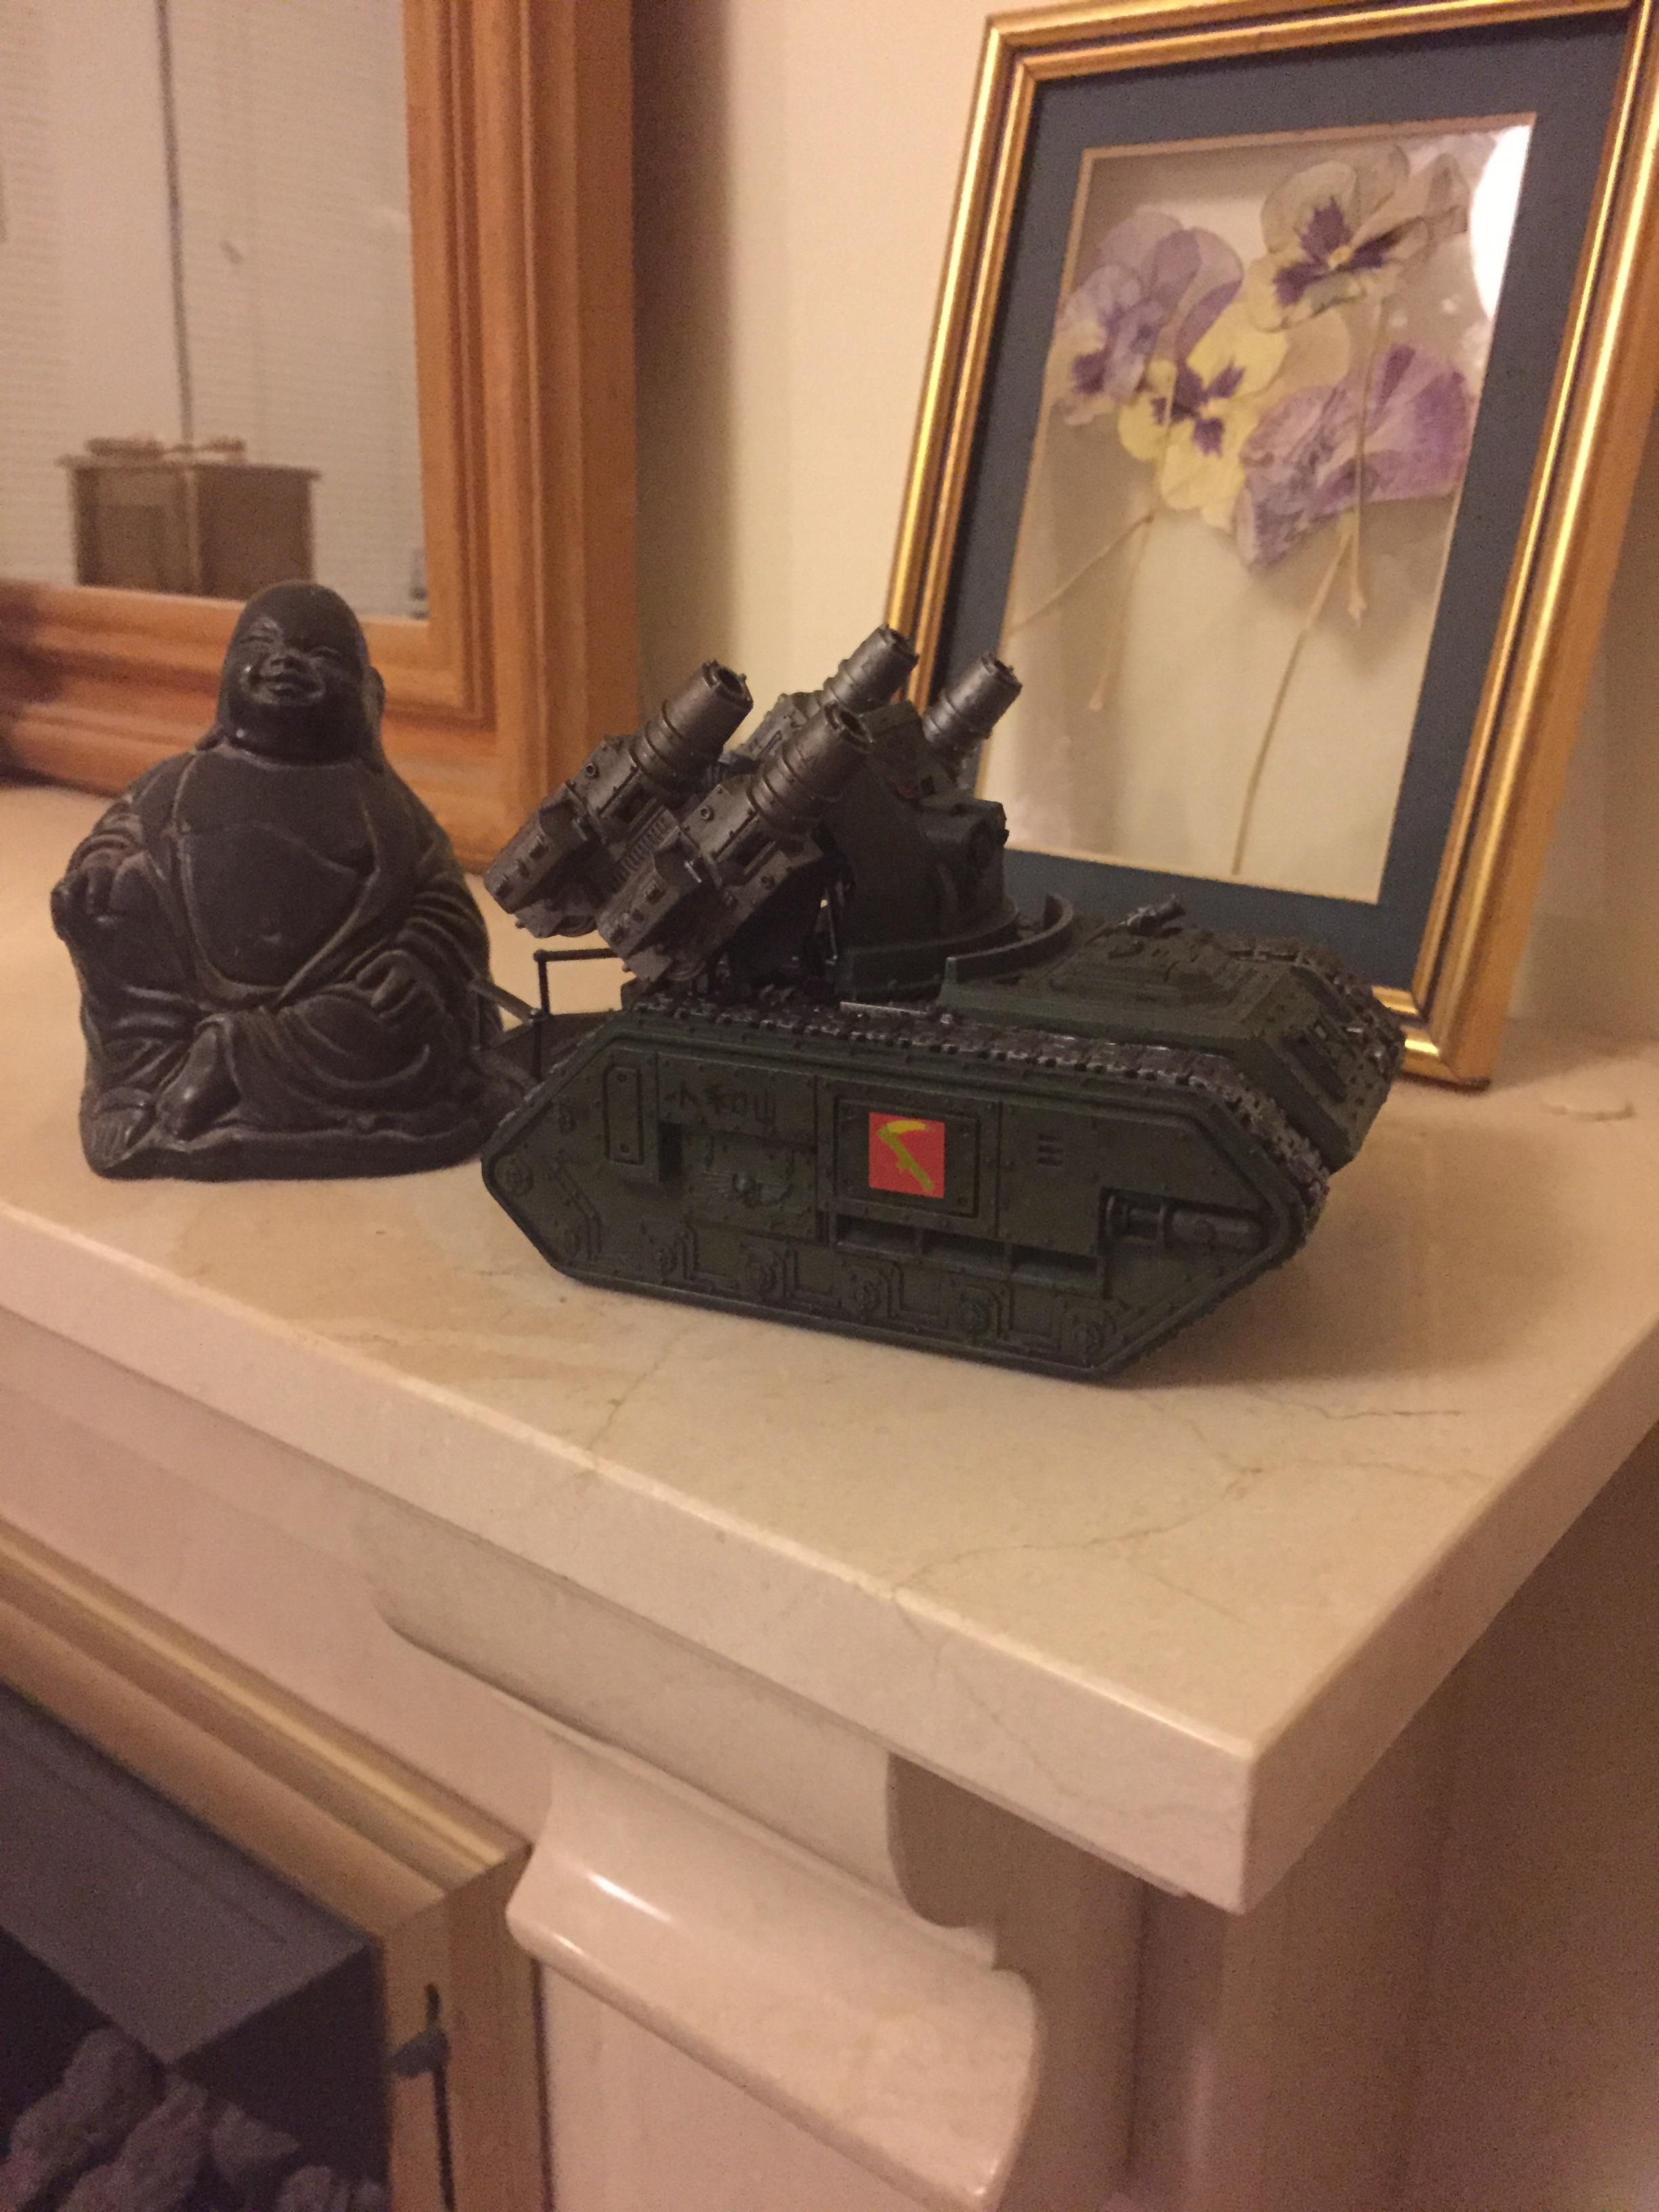 Buddha, China, Chinese, Guard, Imperial, Imperial Guard, Mortar, Stormshard, Tank, Weathered, Wyvern